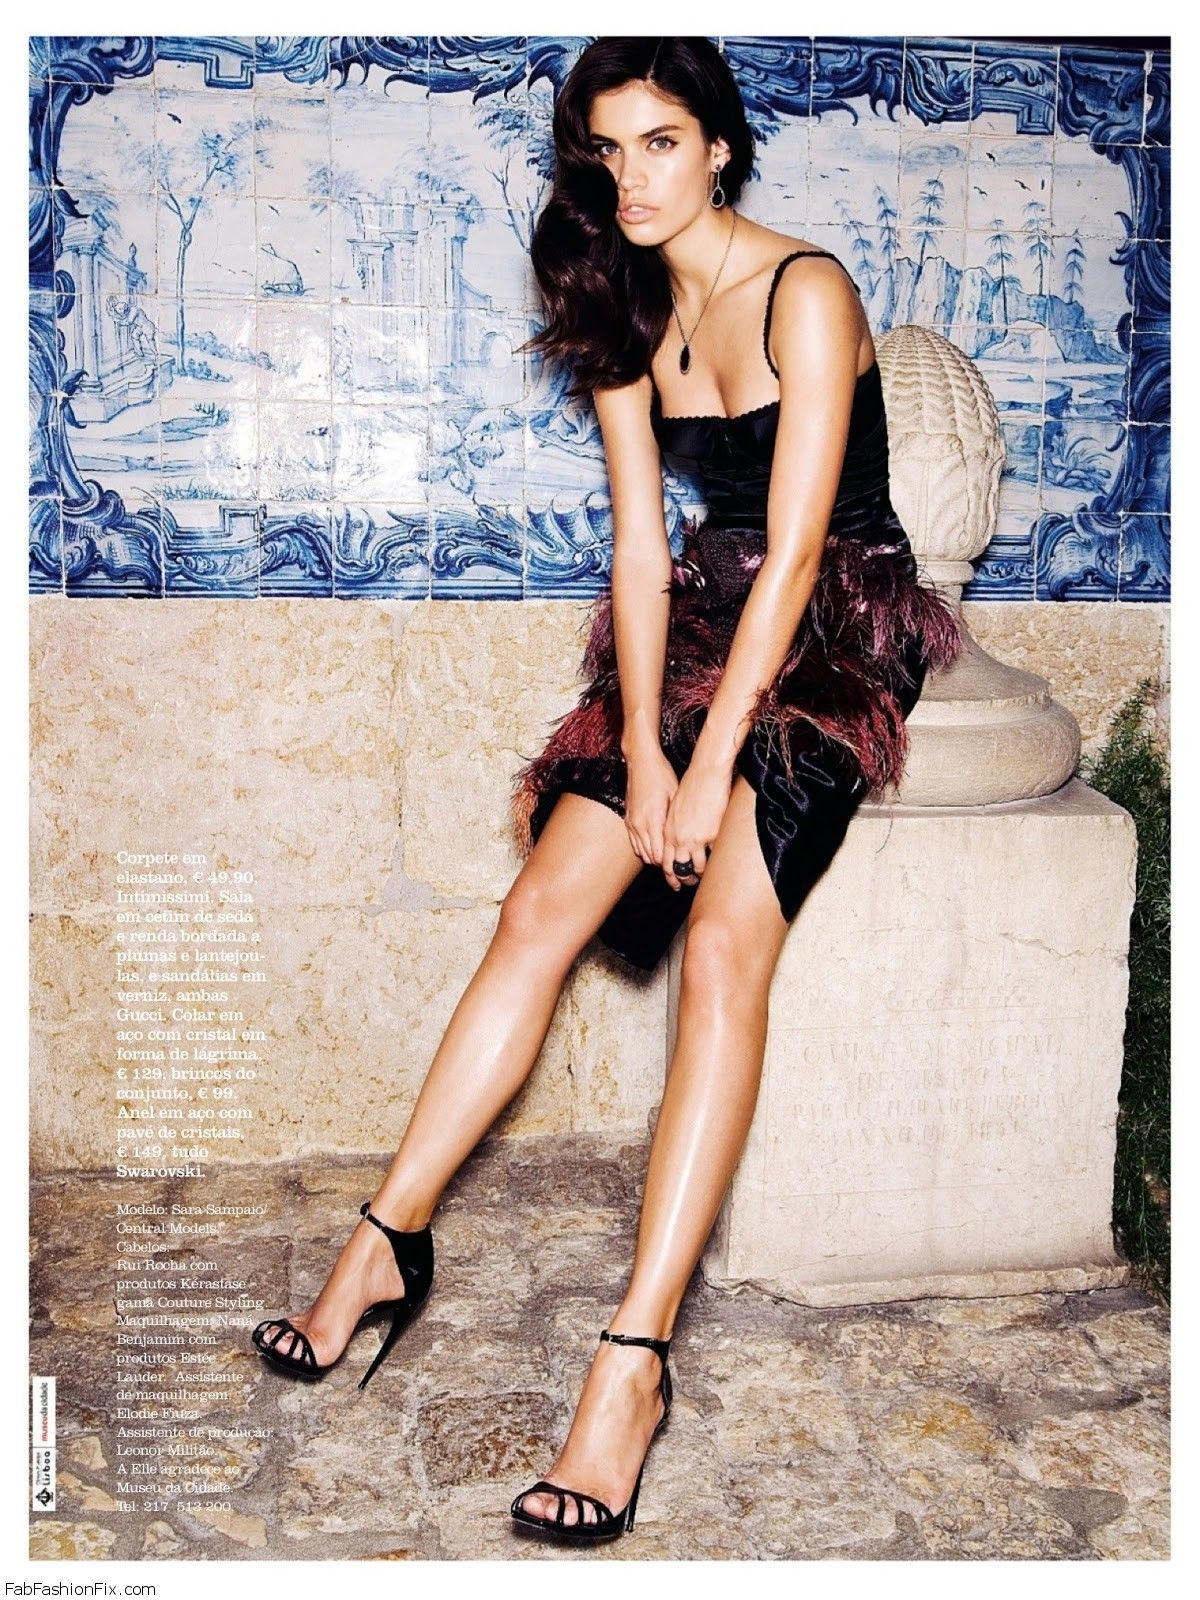 fashion_scans_remastered-sara_sampaio-elle_portugal-october_2013-scanned_by_vampirehorde-hq-13